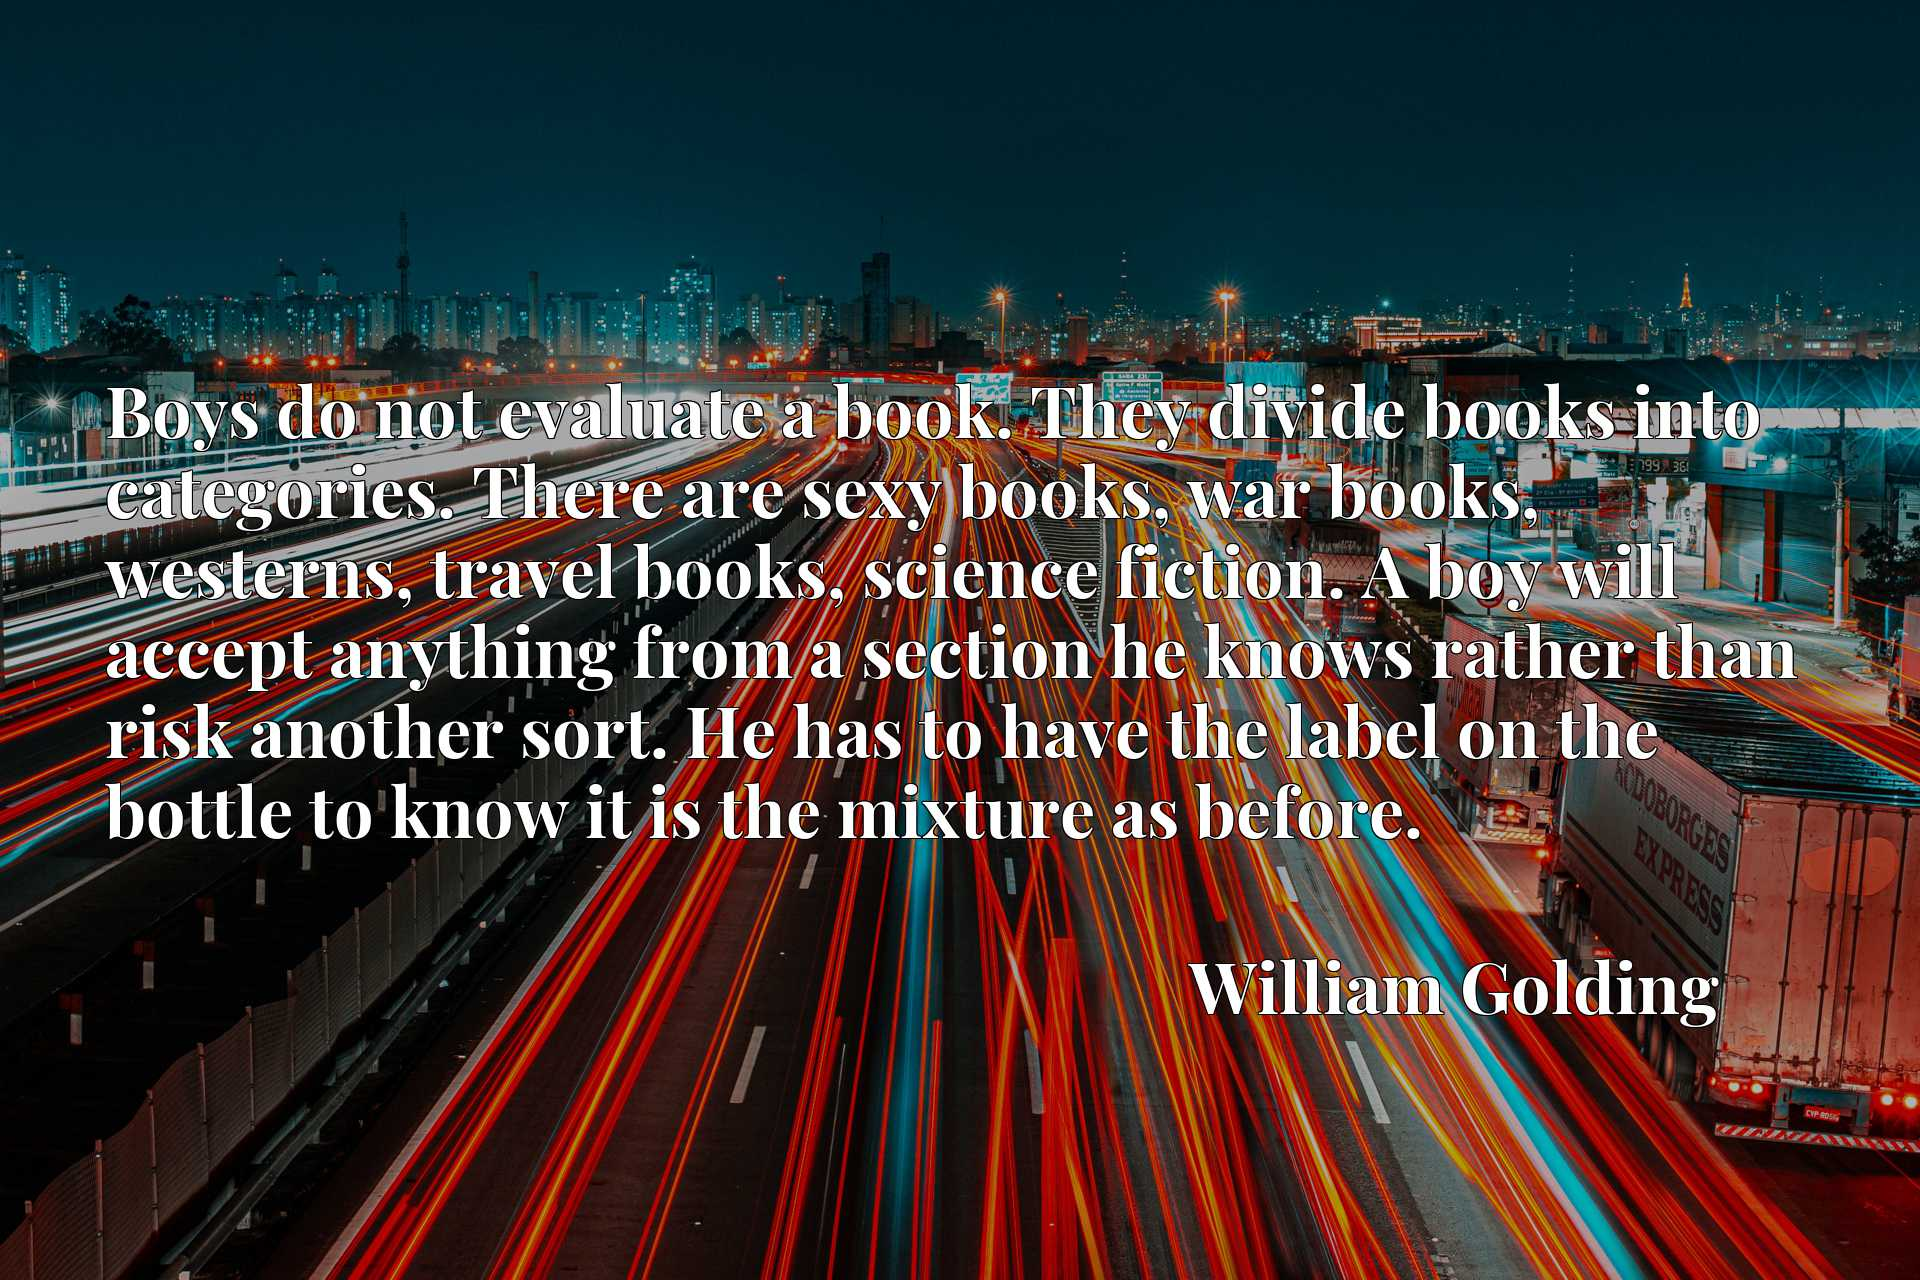 Boys do not evaluate a book. They divide books into categories. There are sexy books, war books, westerns, travel books, science fiction. A boy will accept anything from a section he knows rather than risk another sort. He has to have the label on the bottle to know it is the mixture as before.